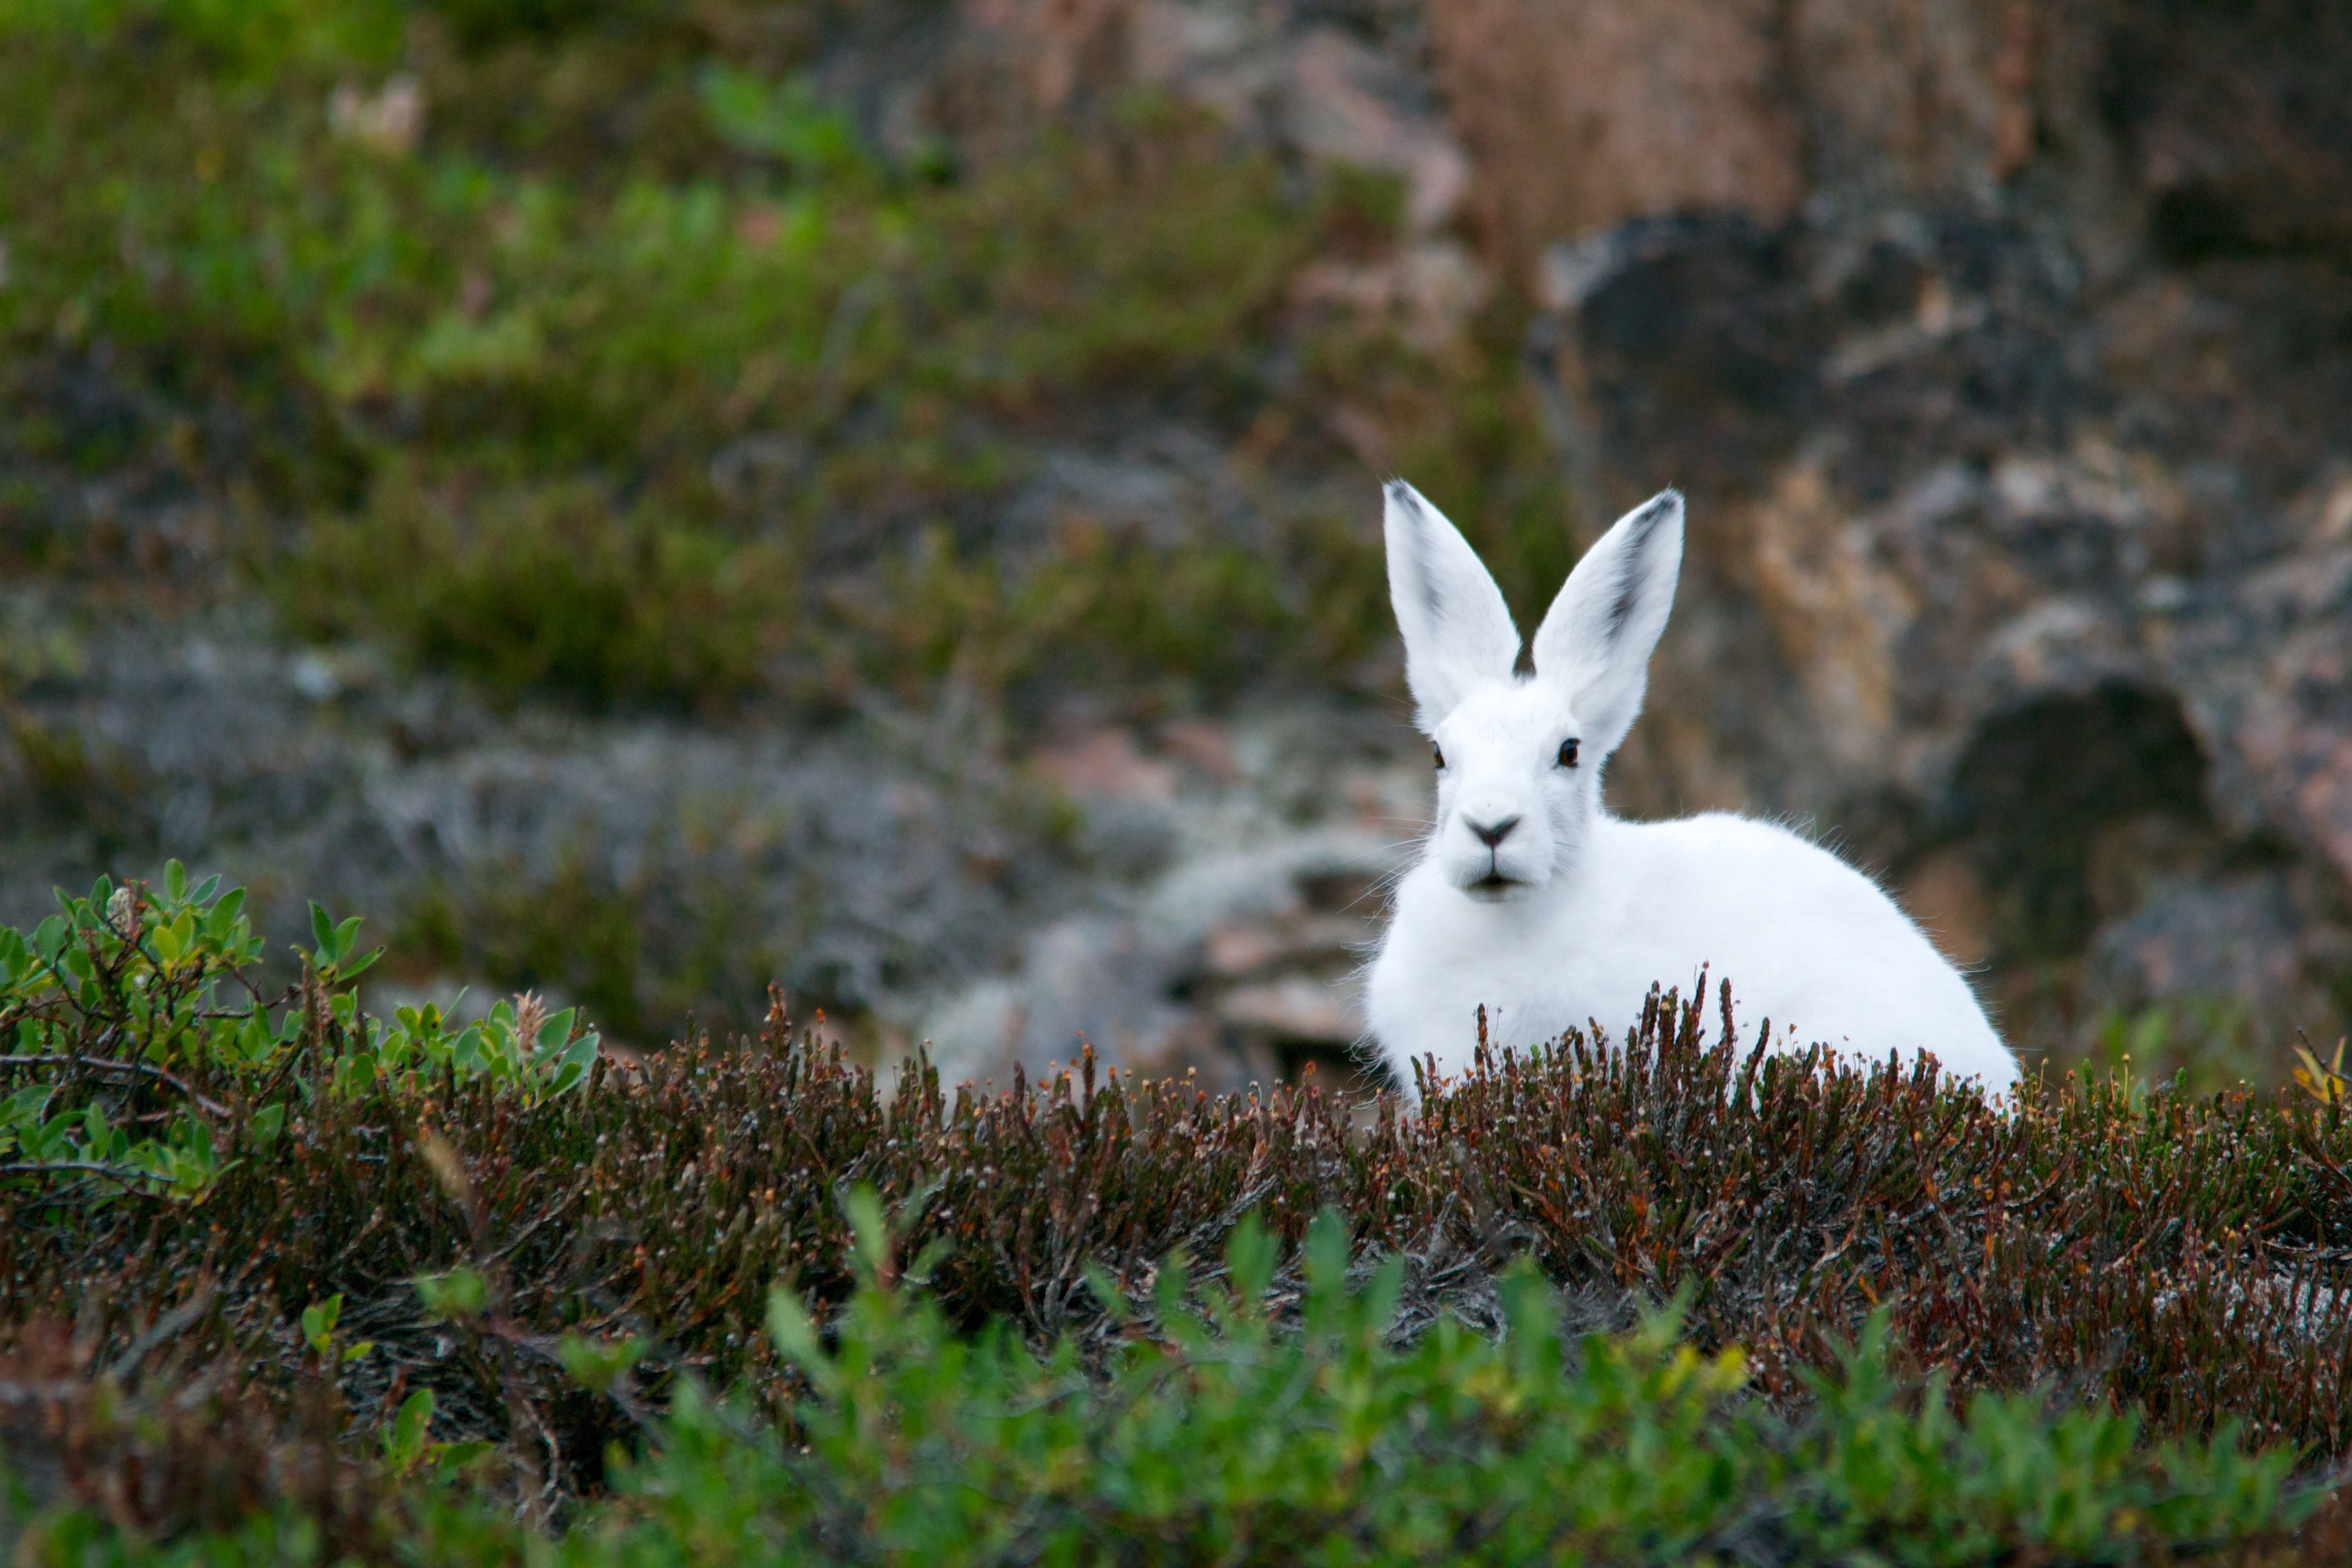 A white rabbit sitting on thick grass in a rocky environment